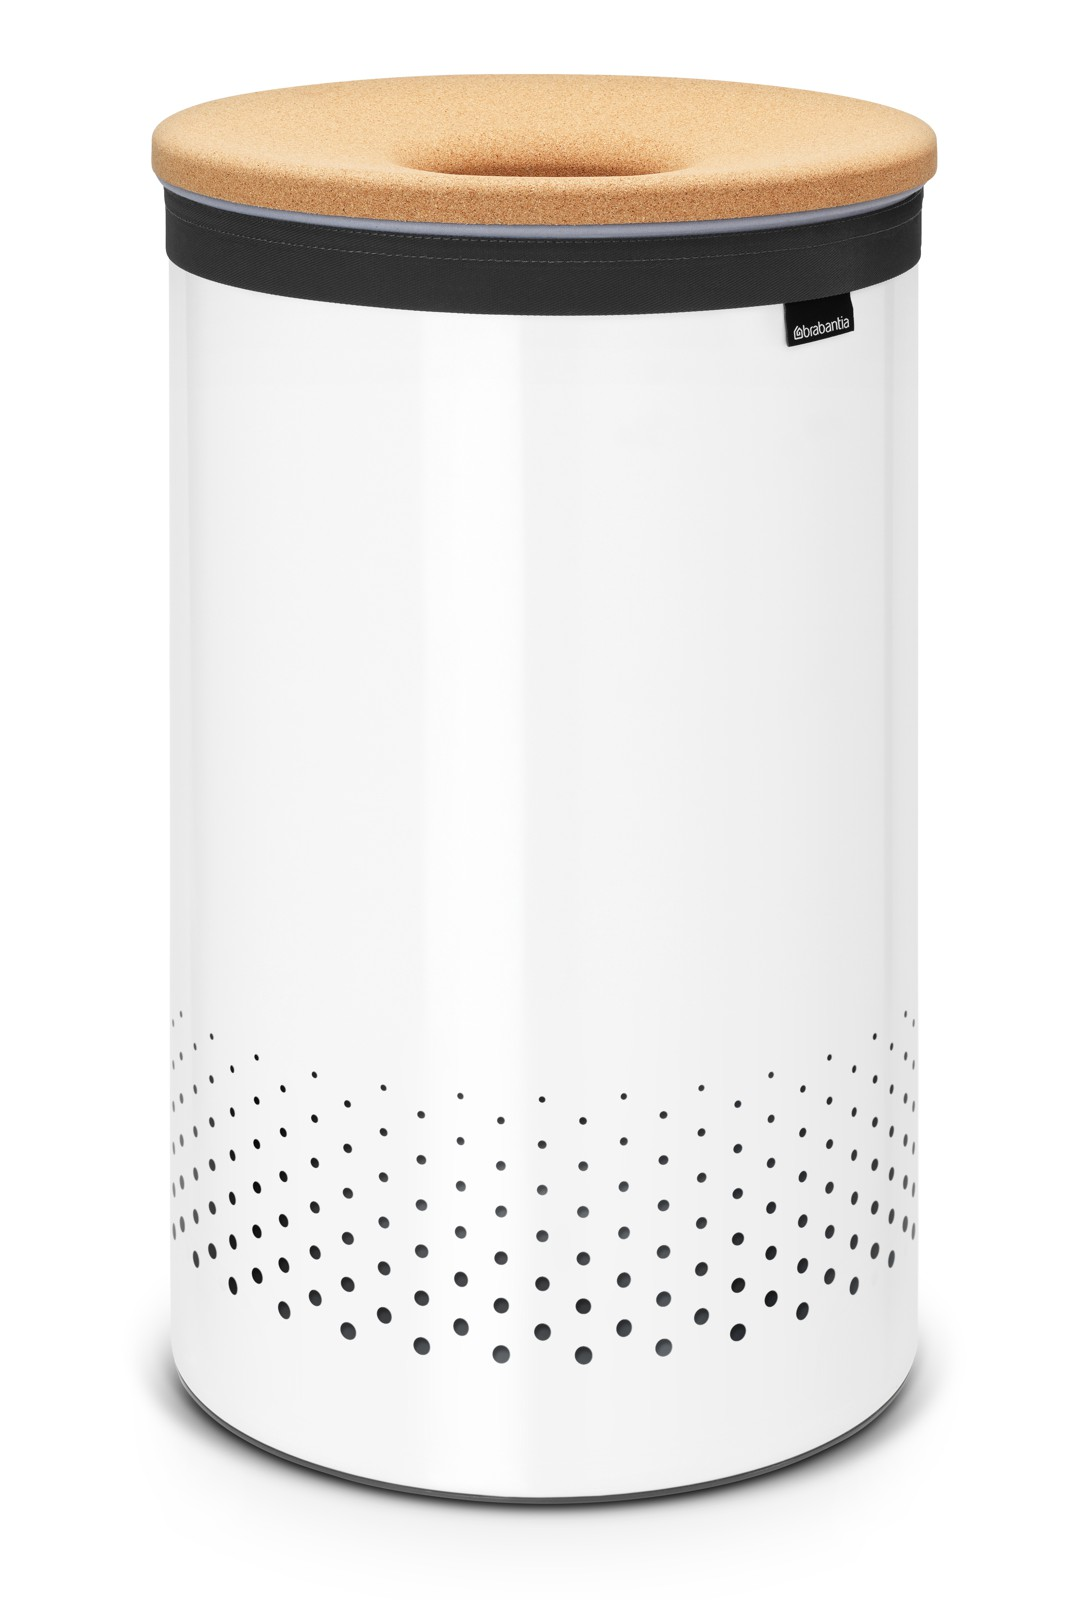 Pyykkikori Brabantia 60 L Quick-Drop White/Cork Brown